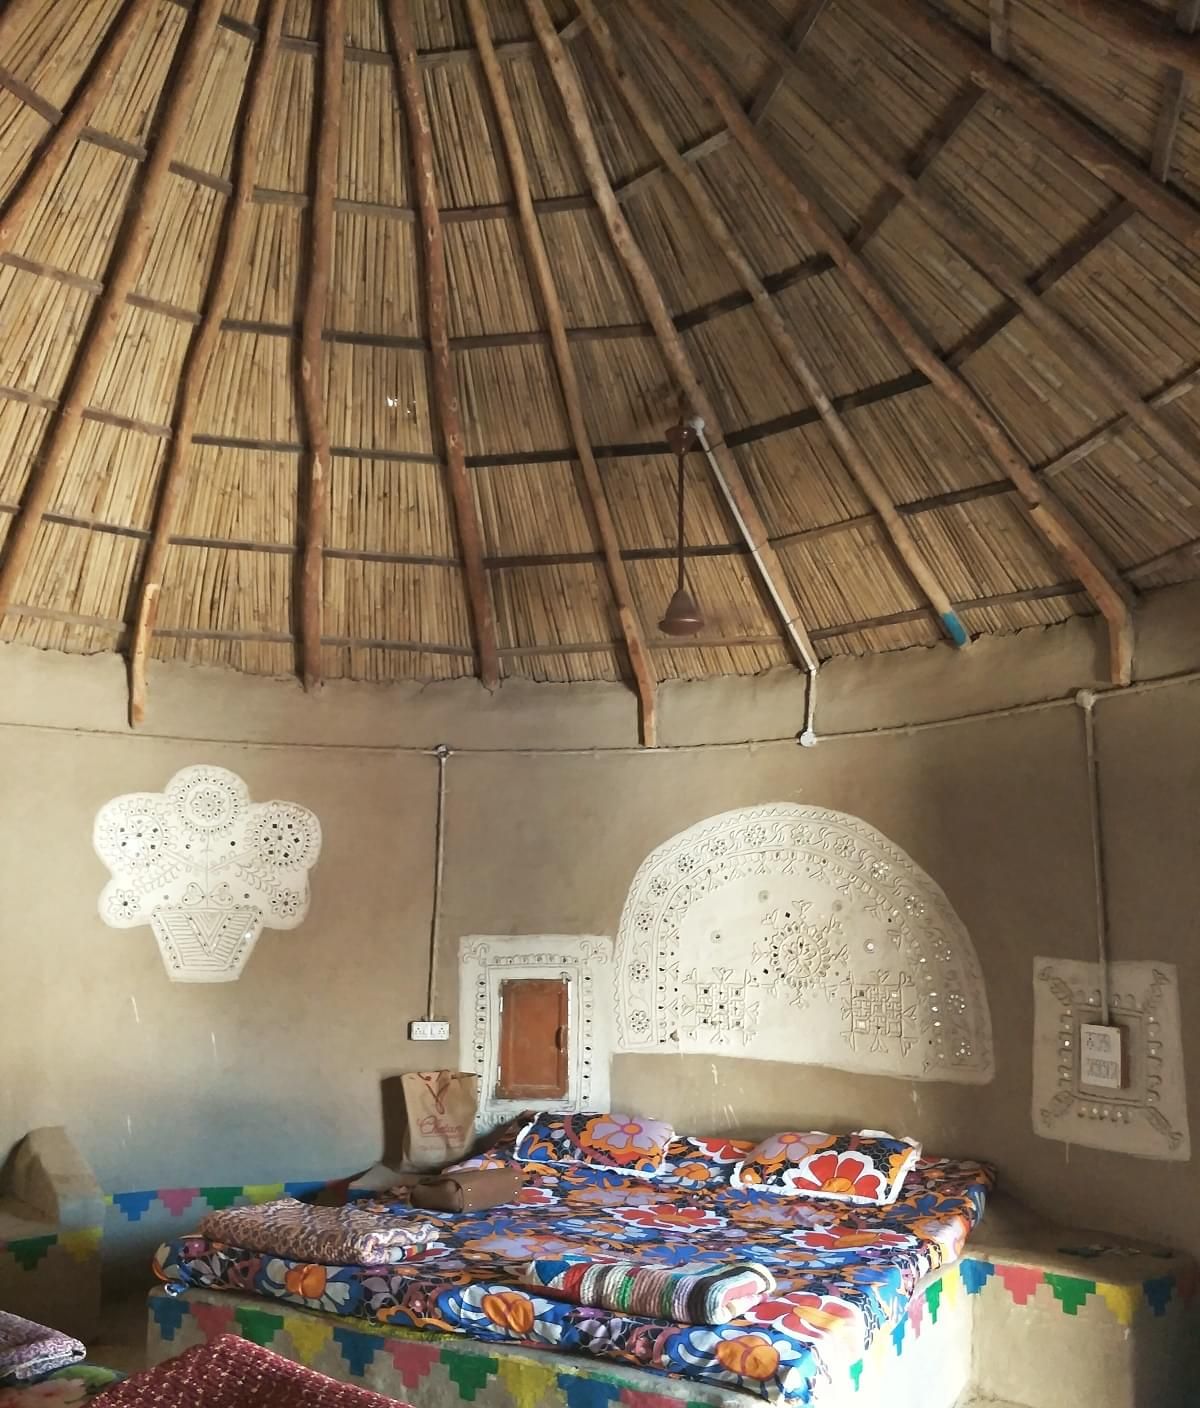 7-Day-Tour-of-Rann-of-Kutch-from-Bhuj-JustWravel-1597387263-3.jpeg